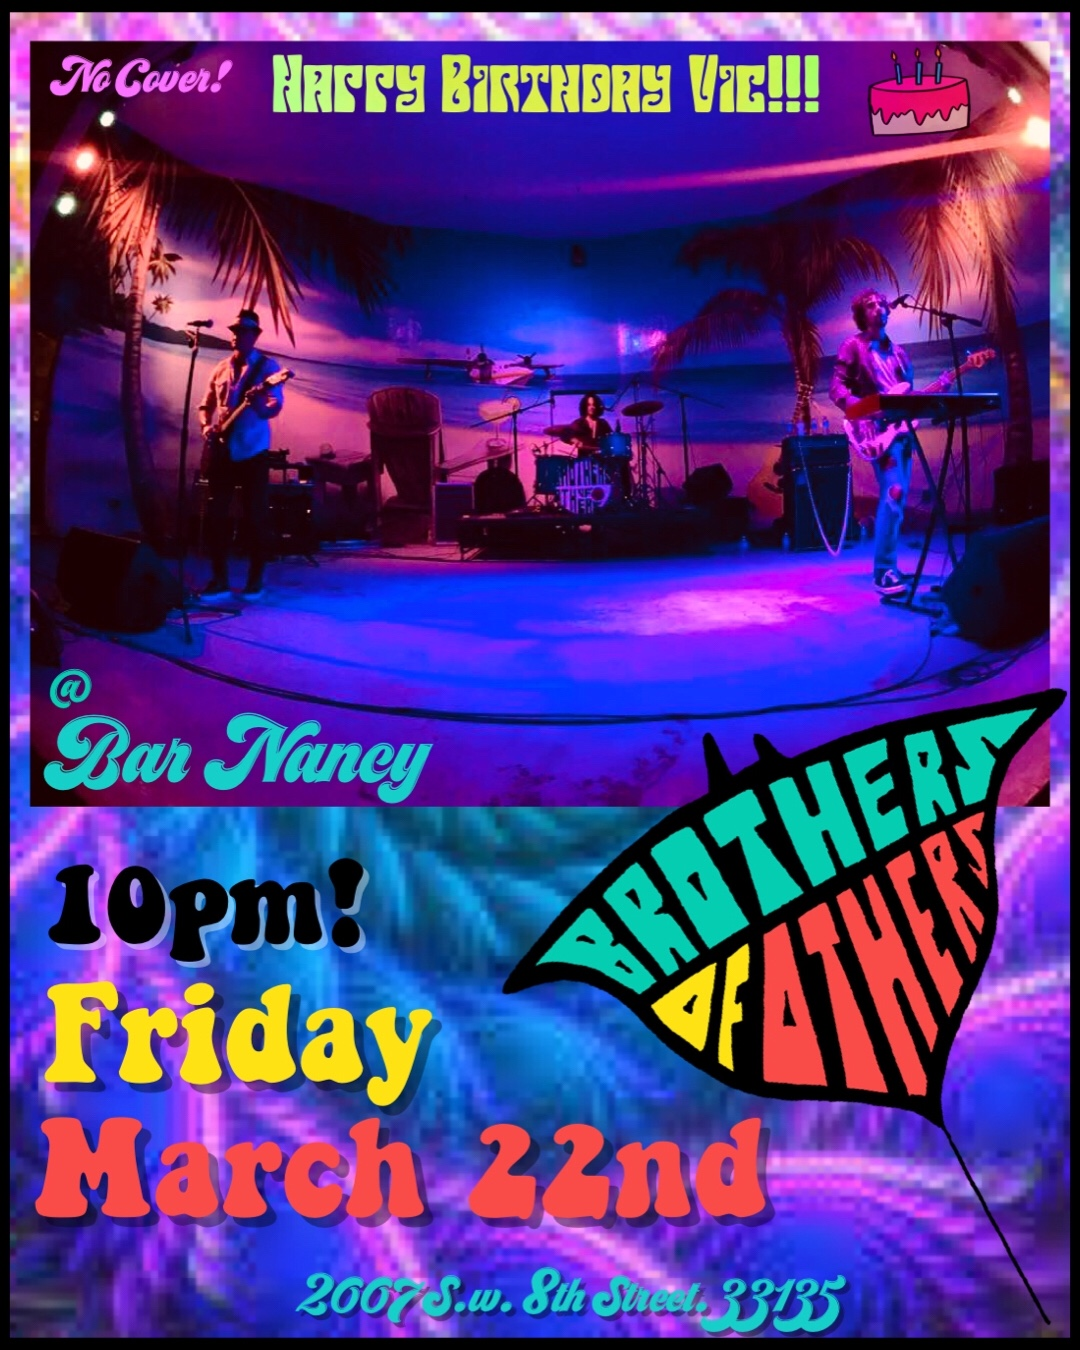 Brothers Of Others! Live in Concert @ Bar Nancy - clock Friday, March 22 at 10 PM